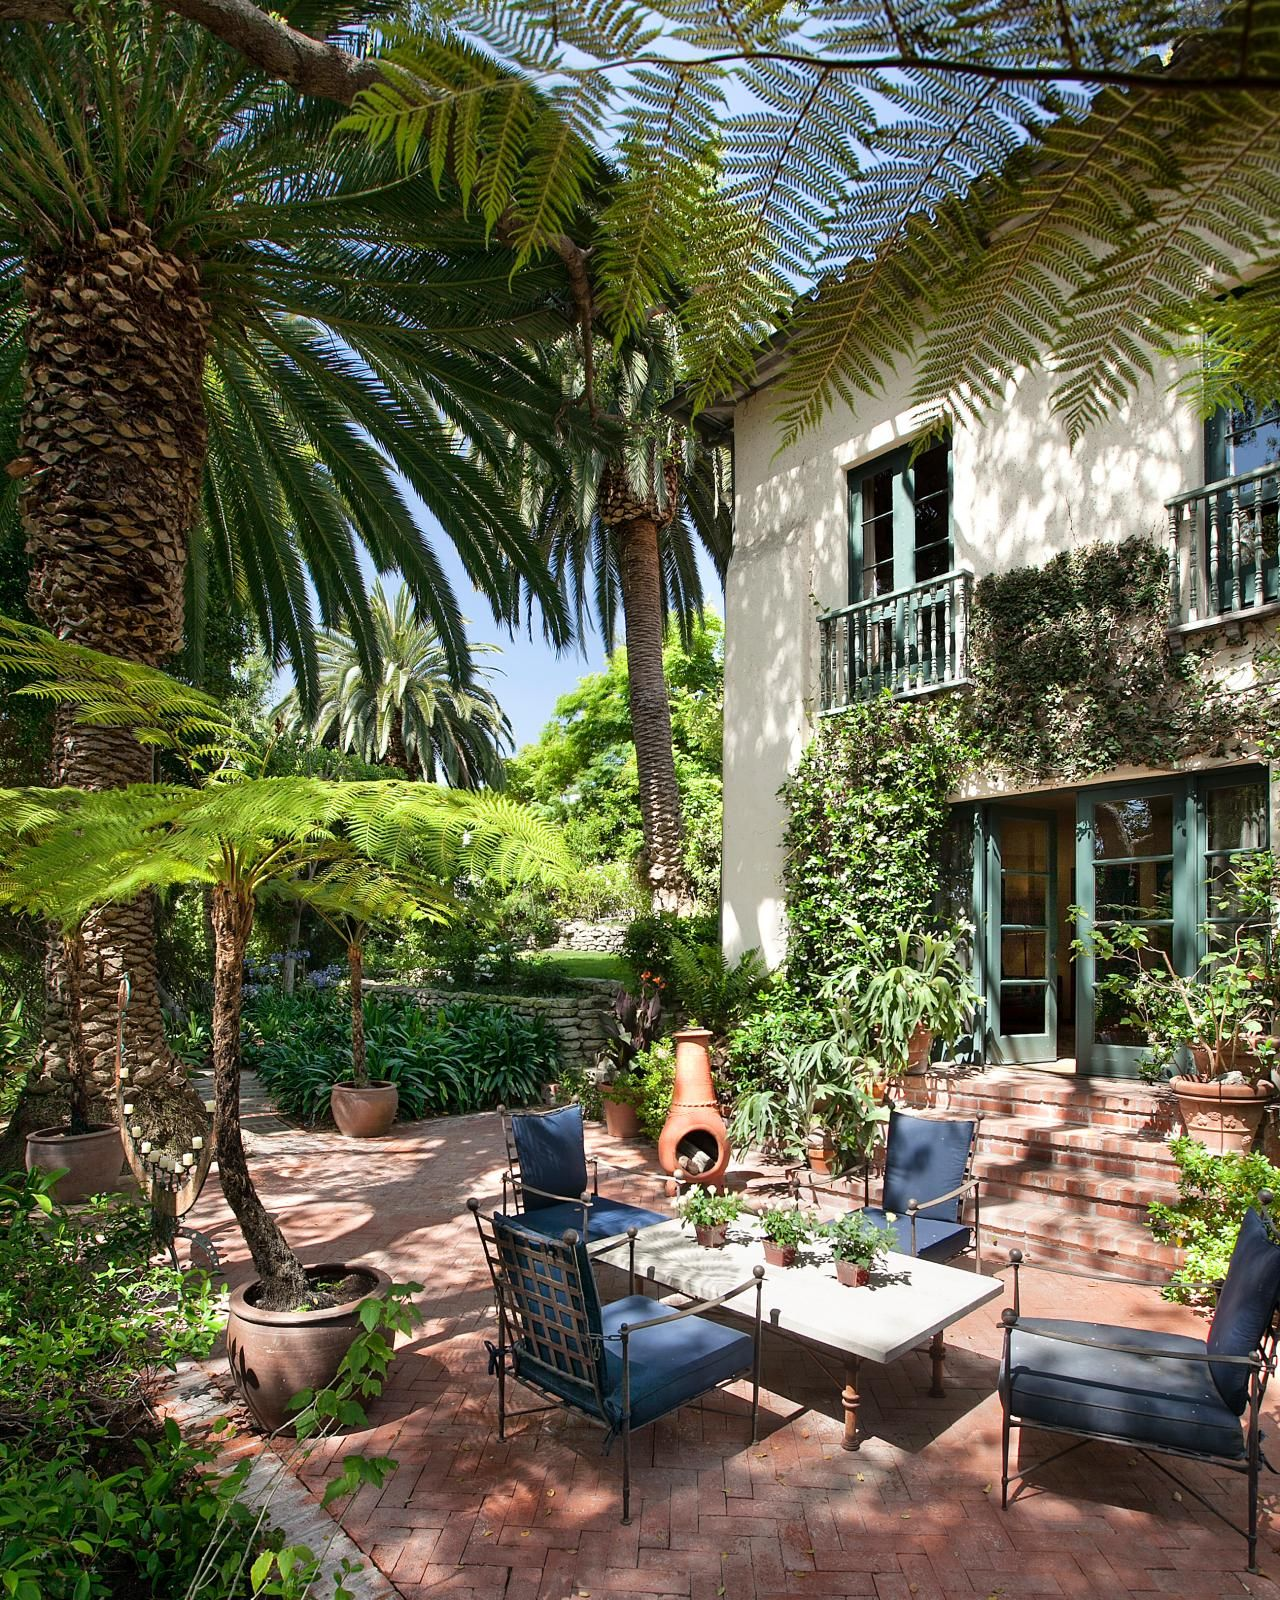 Spanish Style Homes With Courtyards: Tour A Historic Spanish Colonial Home In Los Angeles